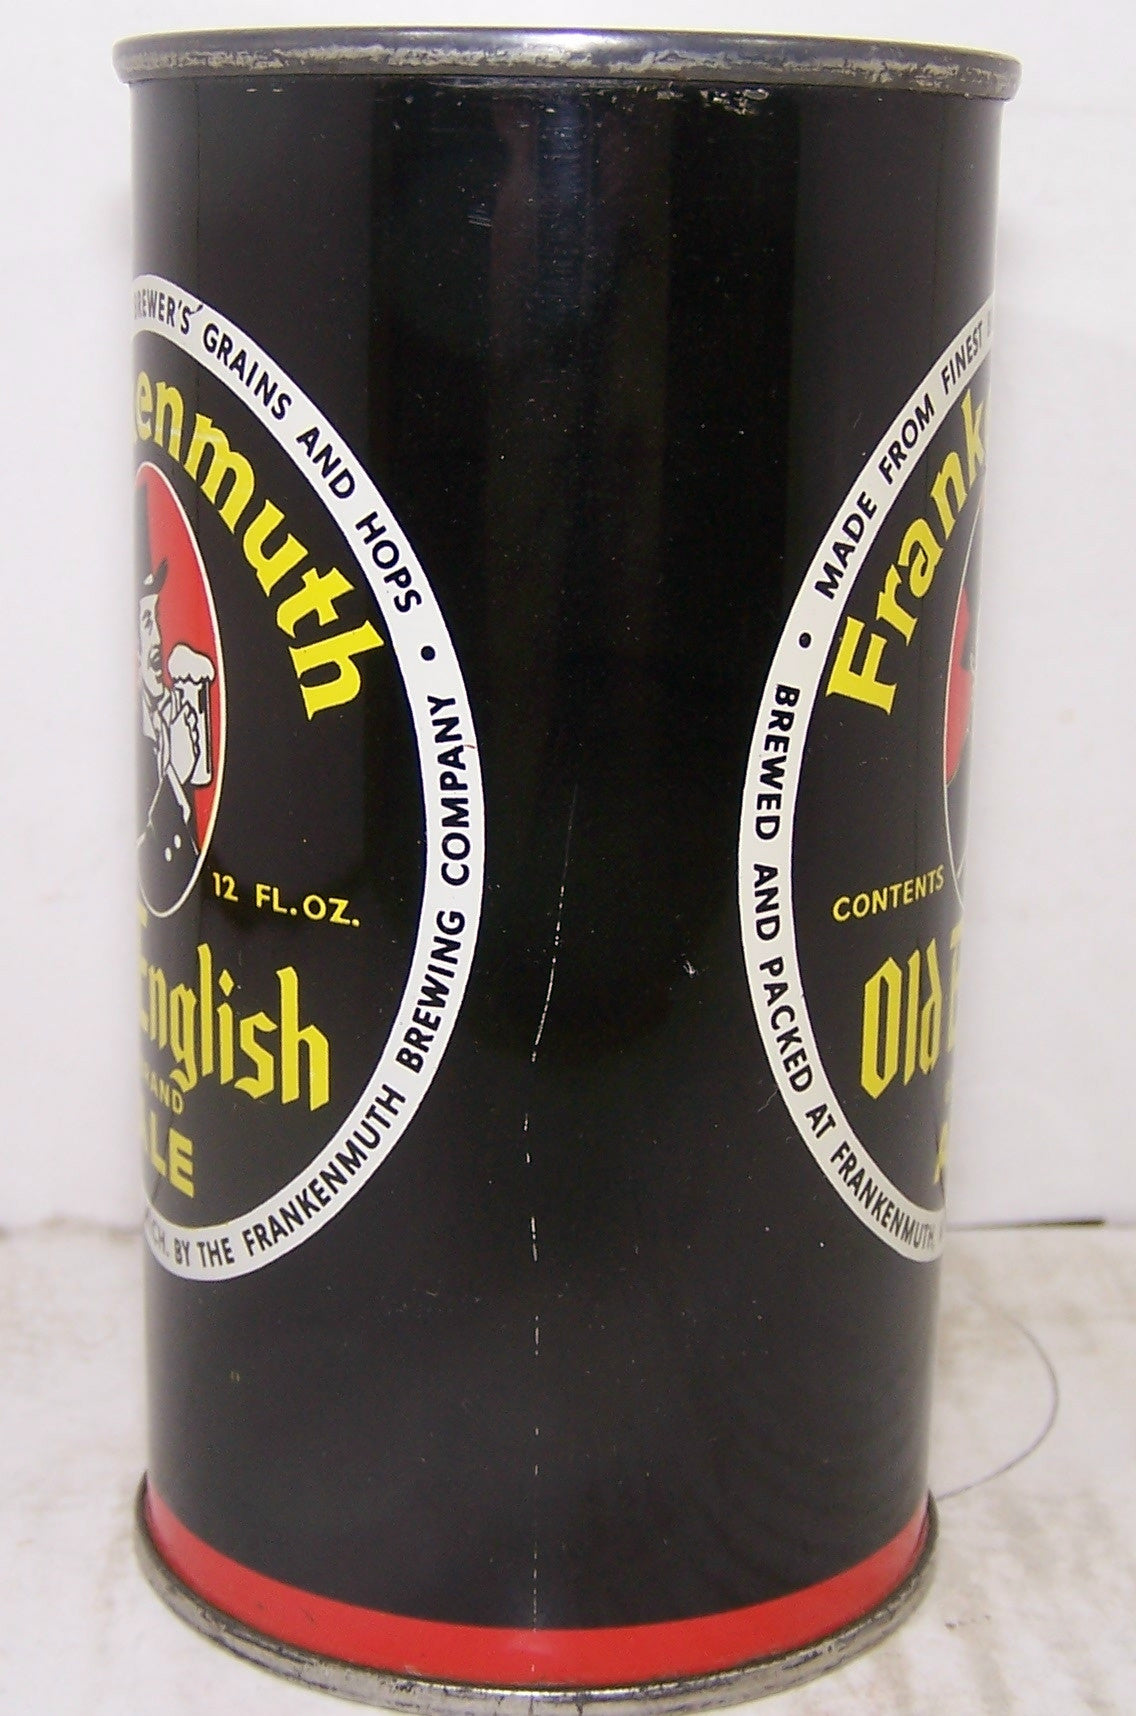 Frankenmuth Old English Ale, USBC 66-22, Grade A1+ Sold 5/13/17